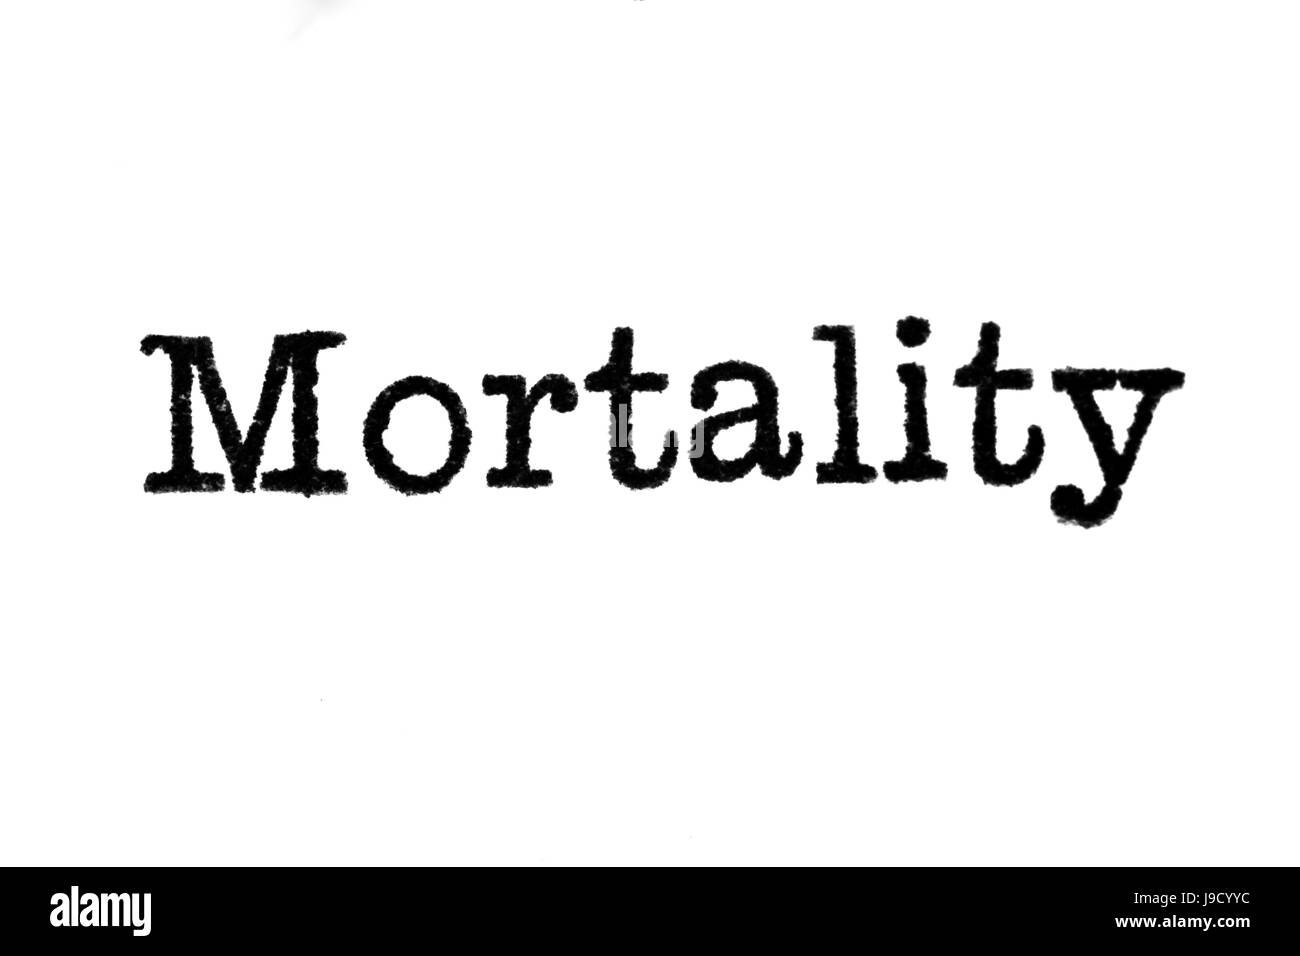 The word 'Mortality' from a typewriter on a white background - Stock Image